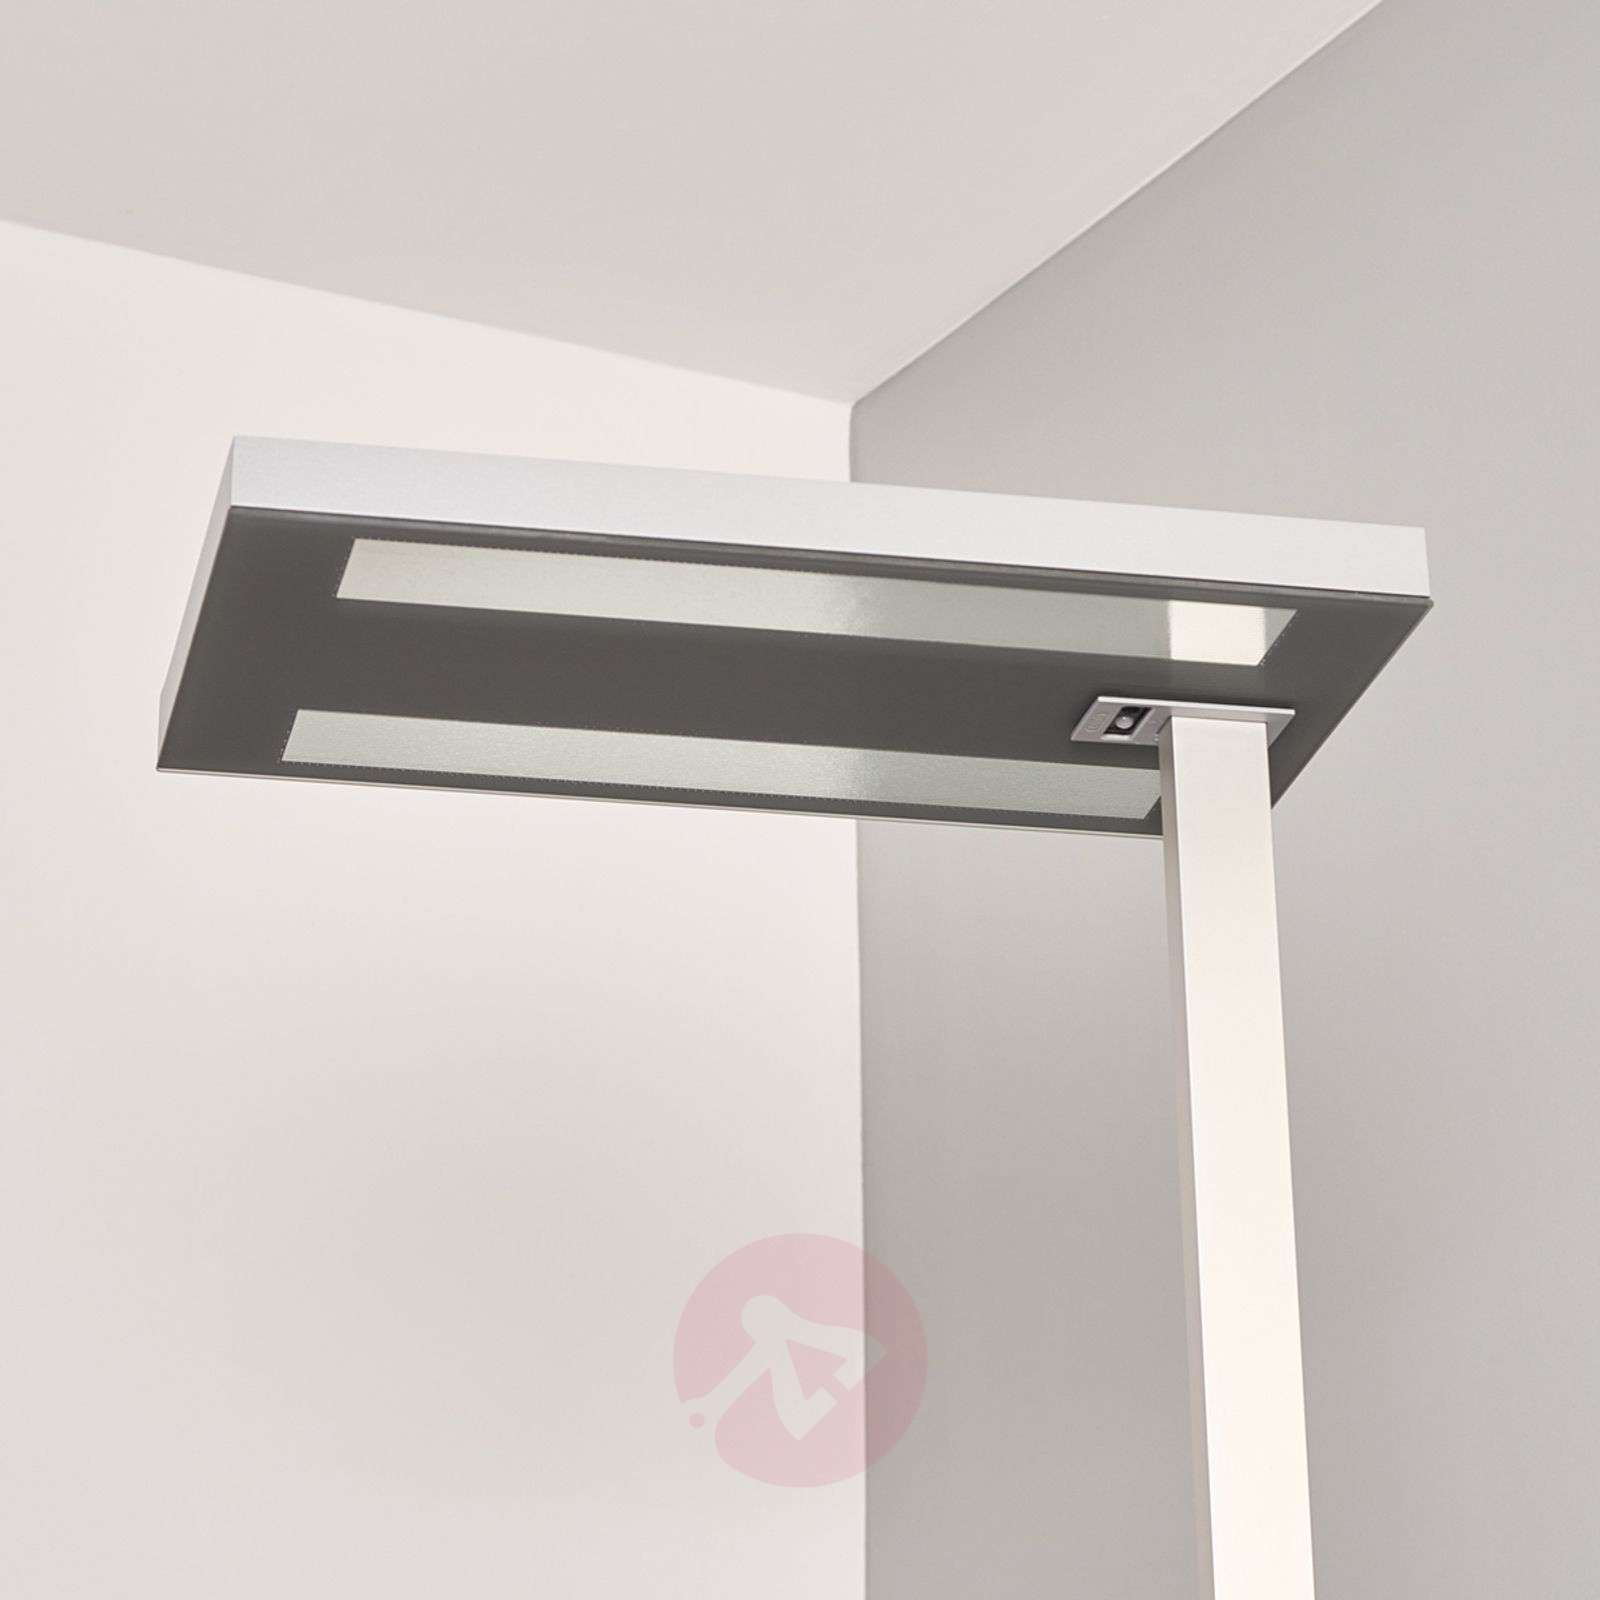 office table lamp. Office Floor Lamp Free-F LED HFDd 840 SD Grey-6040160-03 Table